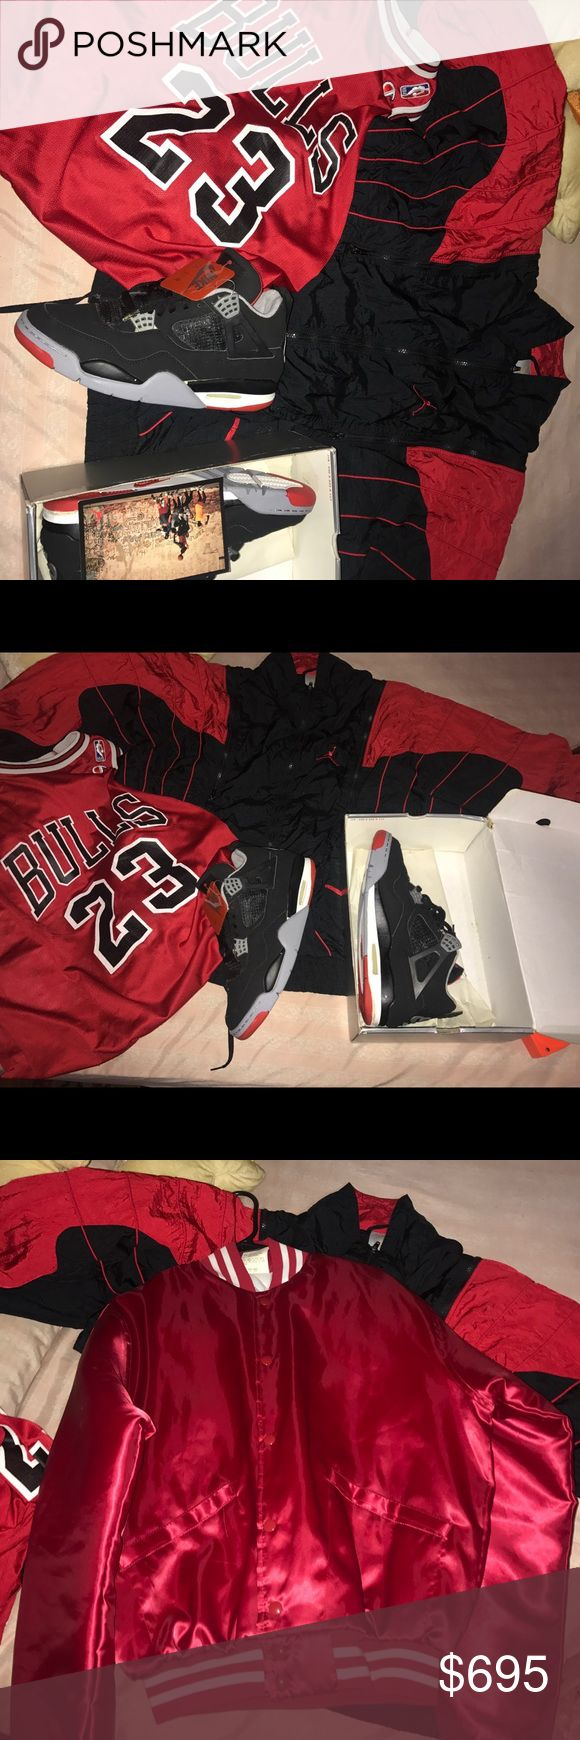 Nike Air Jordan Retro 4  jersey jacket varsity Contact me AND you can get this deal for only 585through PP You are getting everything u see in this picture. The air Jordan Michael Jordan champion jersey from the 90s size 44.  also the Bred air Jordan Nike air Jordan black cement 4s from 1999 size 11 comes with original everything. Also the jacket windbreaker in the back from 1990 size Large -XL and the red varsity jacket size medium you get everything for this awesome price. Don't miss out…